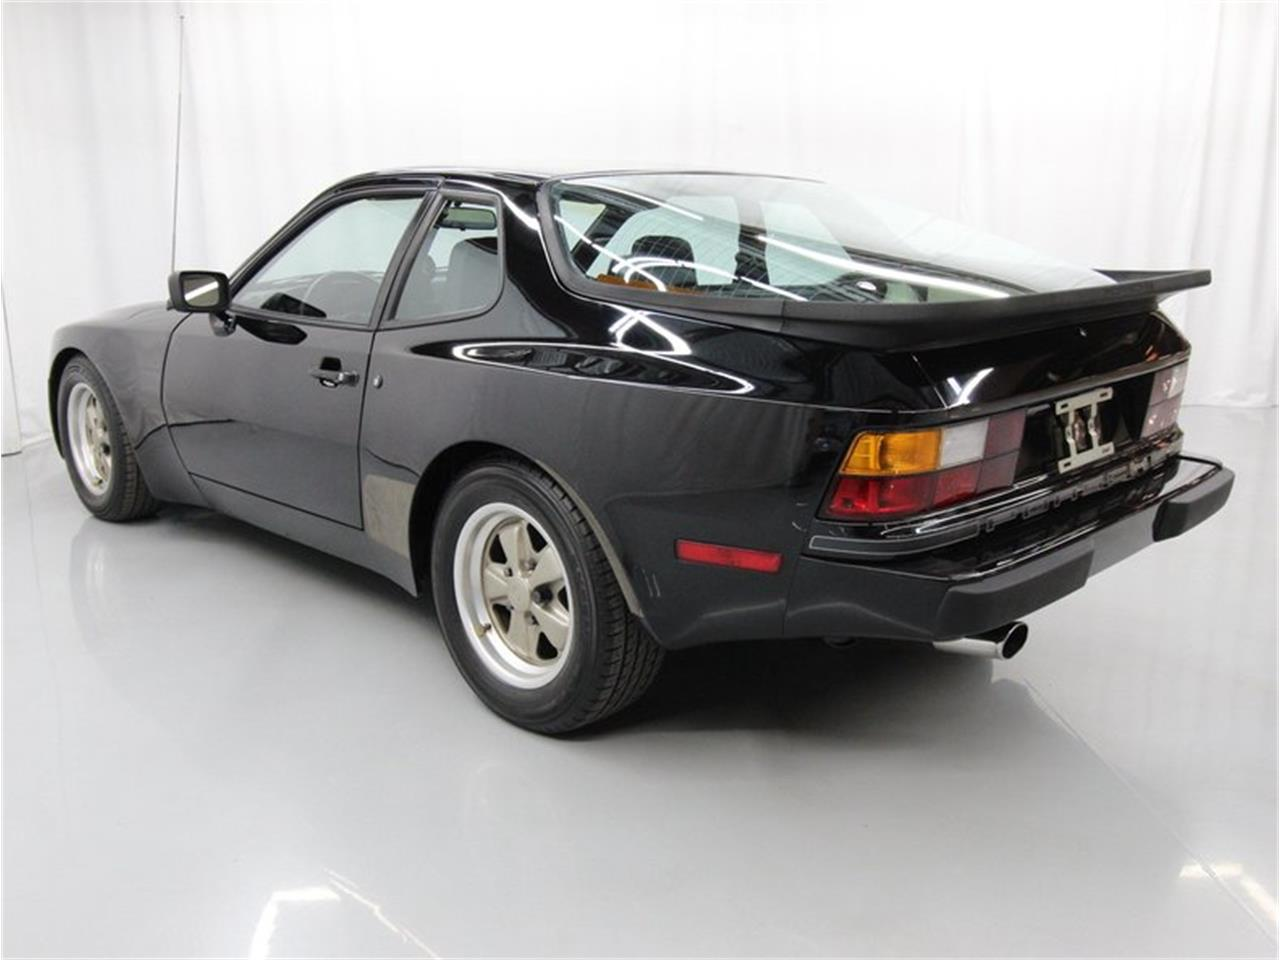 1985 Porsche 944 (CC-1378610) for sale in Christiansburg, Virginia